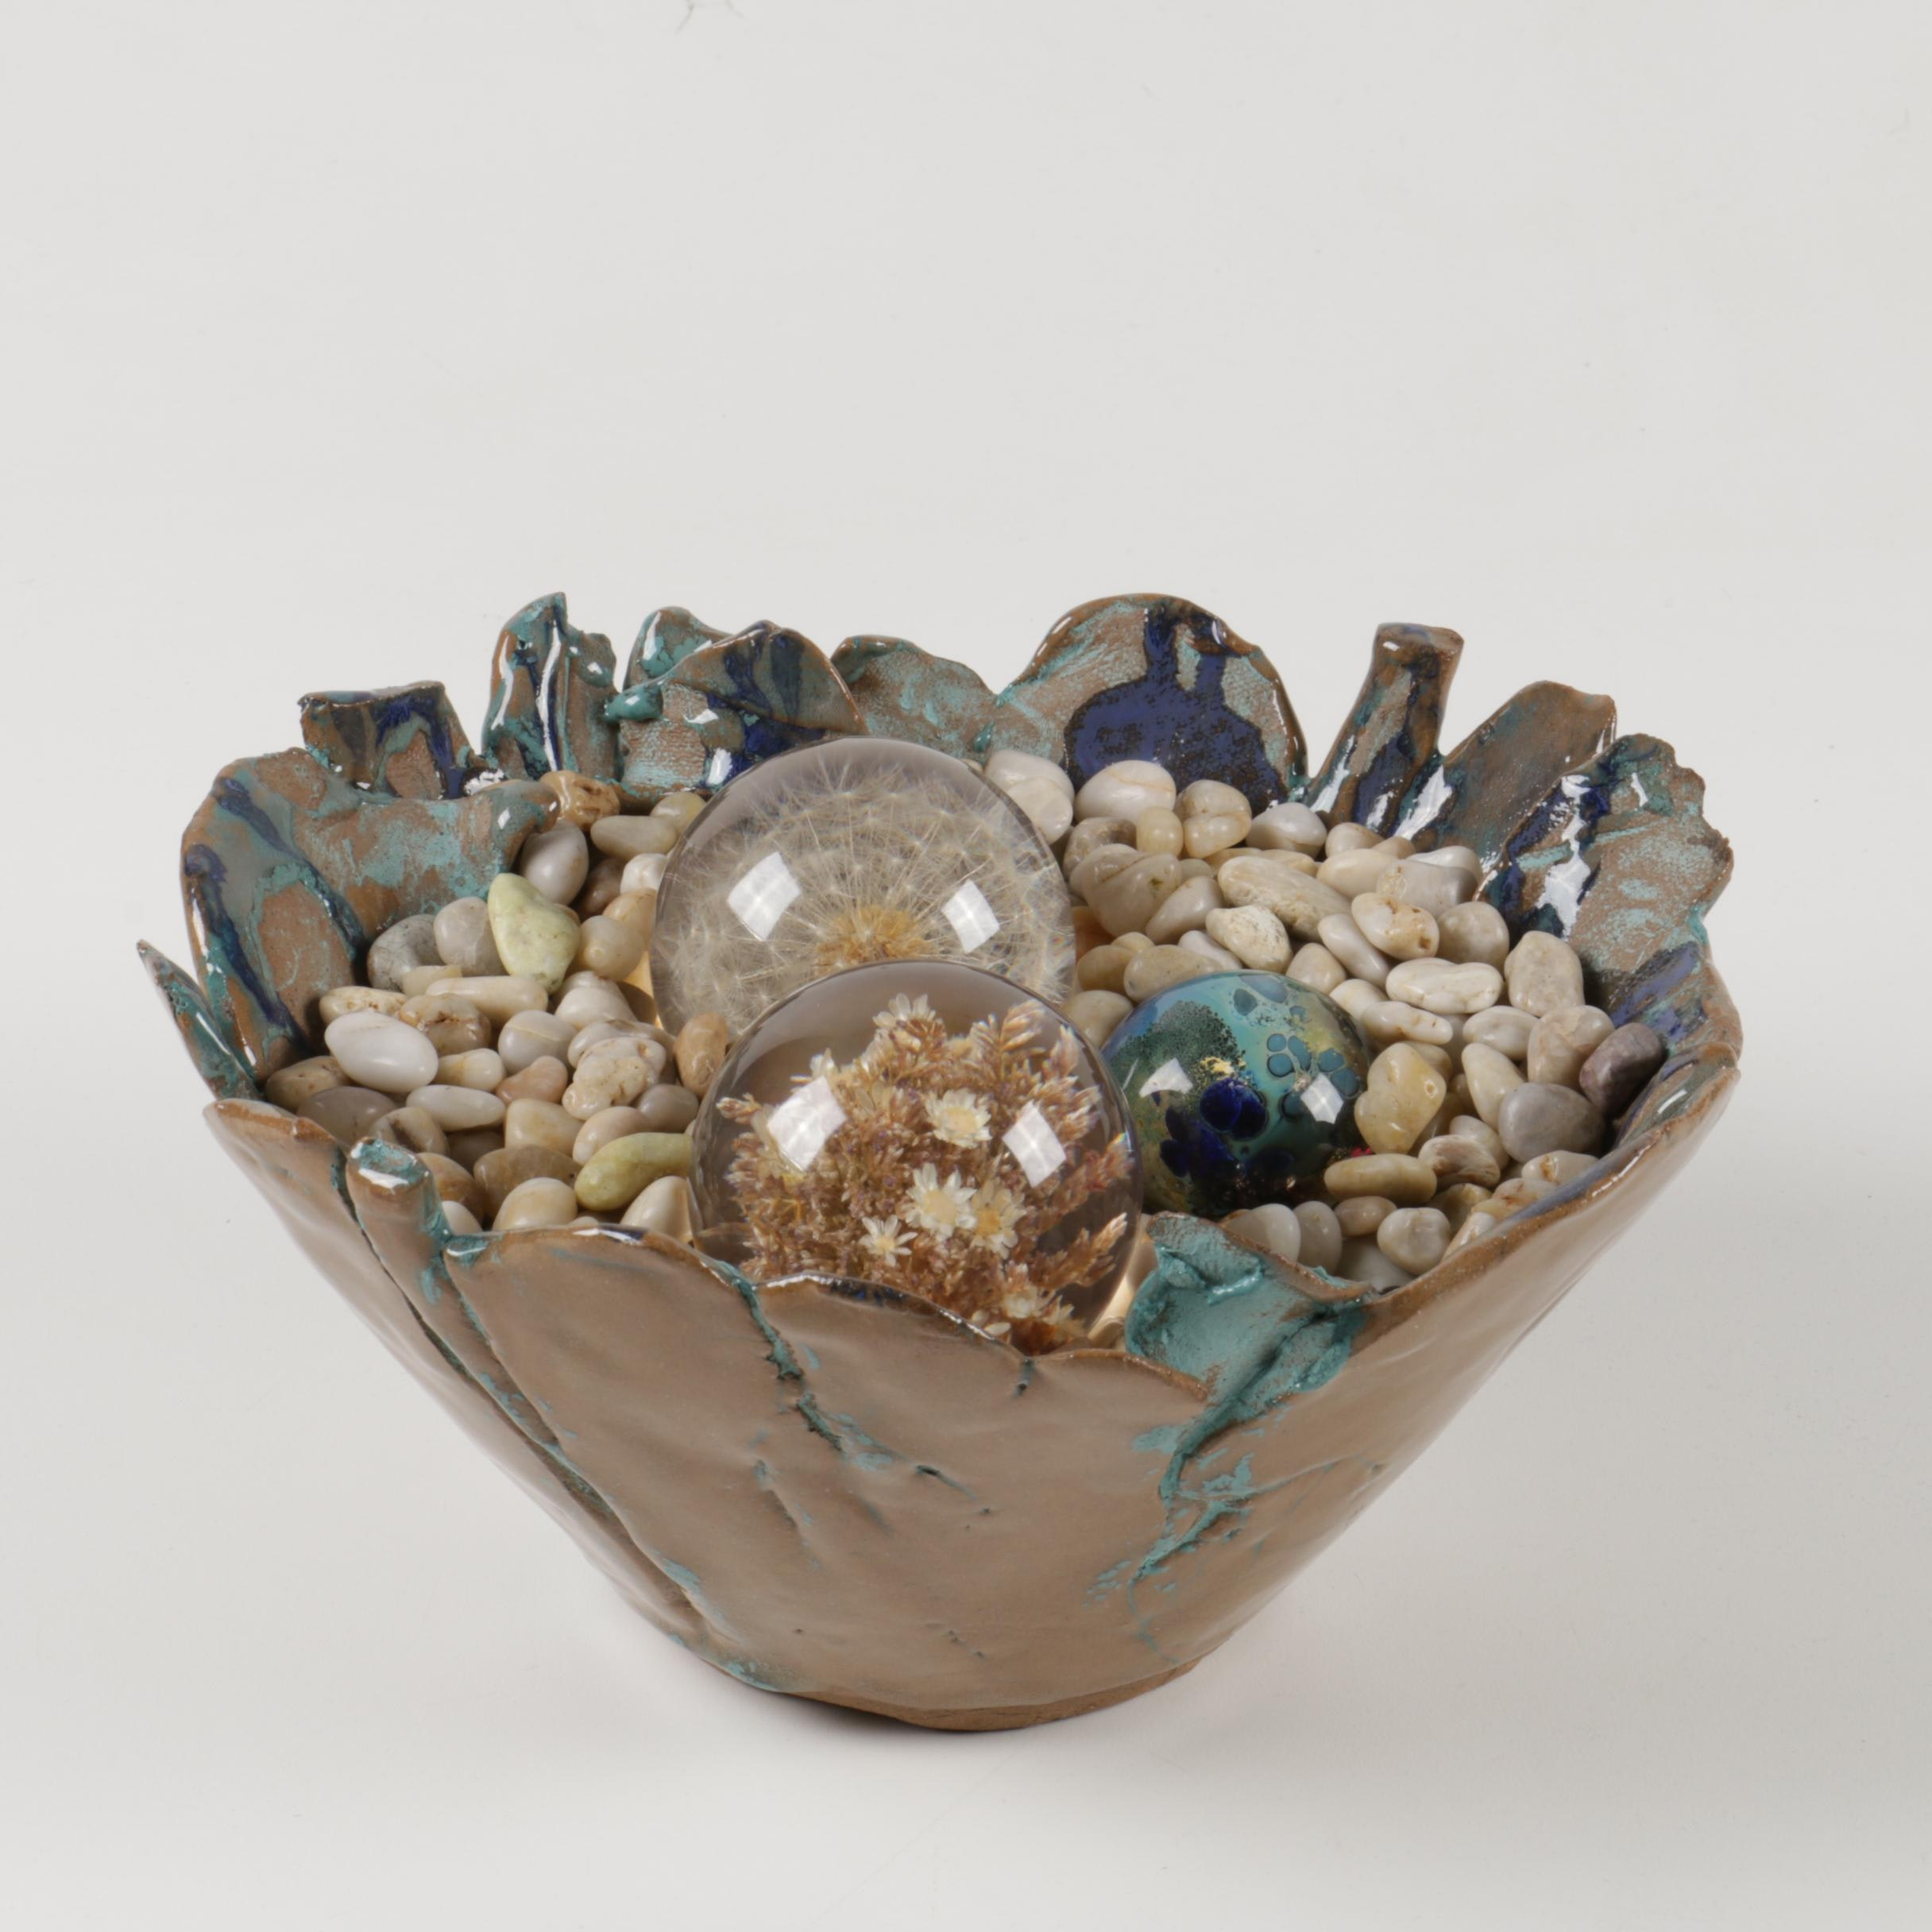 Decorative Bowl with Marbles and Rocks